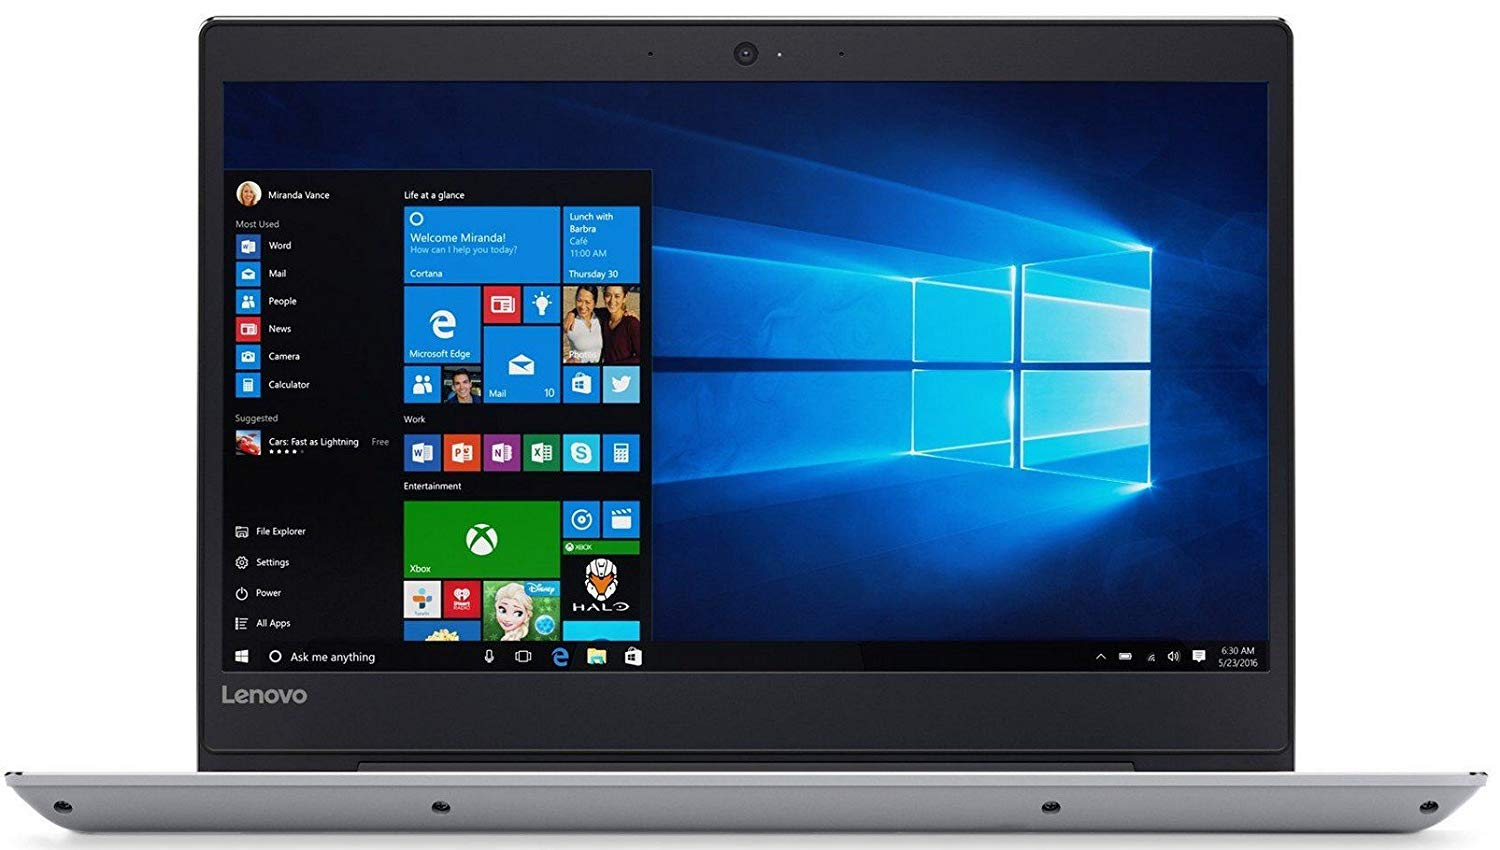 "Lenovo Ideapad 130-15IKB 81H7005BIN / Intel Core i3-6006U 2.0 GHz / 4GB / 1TB / DVDRW / 15.6"" FHD TN / Windows 10 Home SL / Black Color"